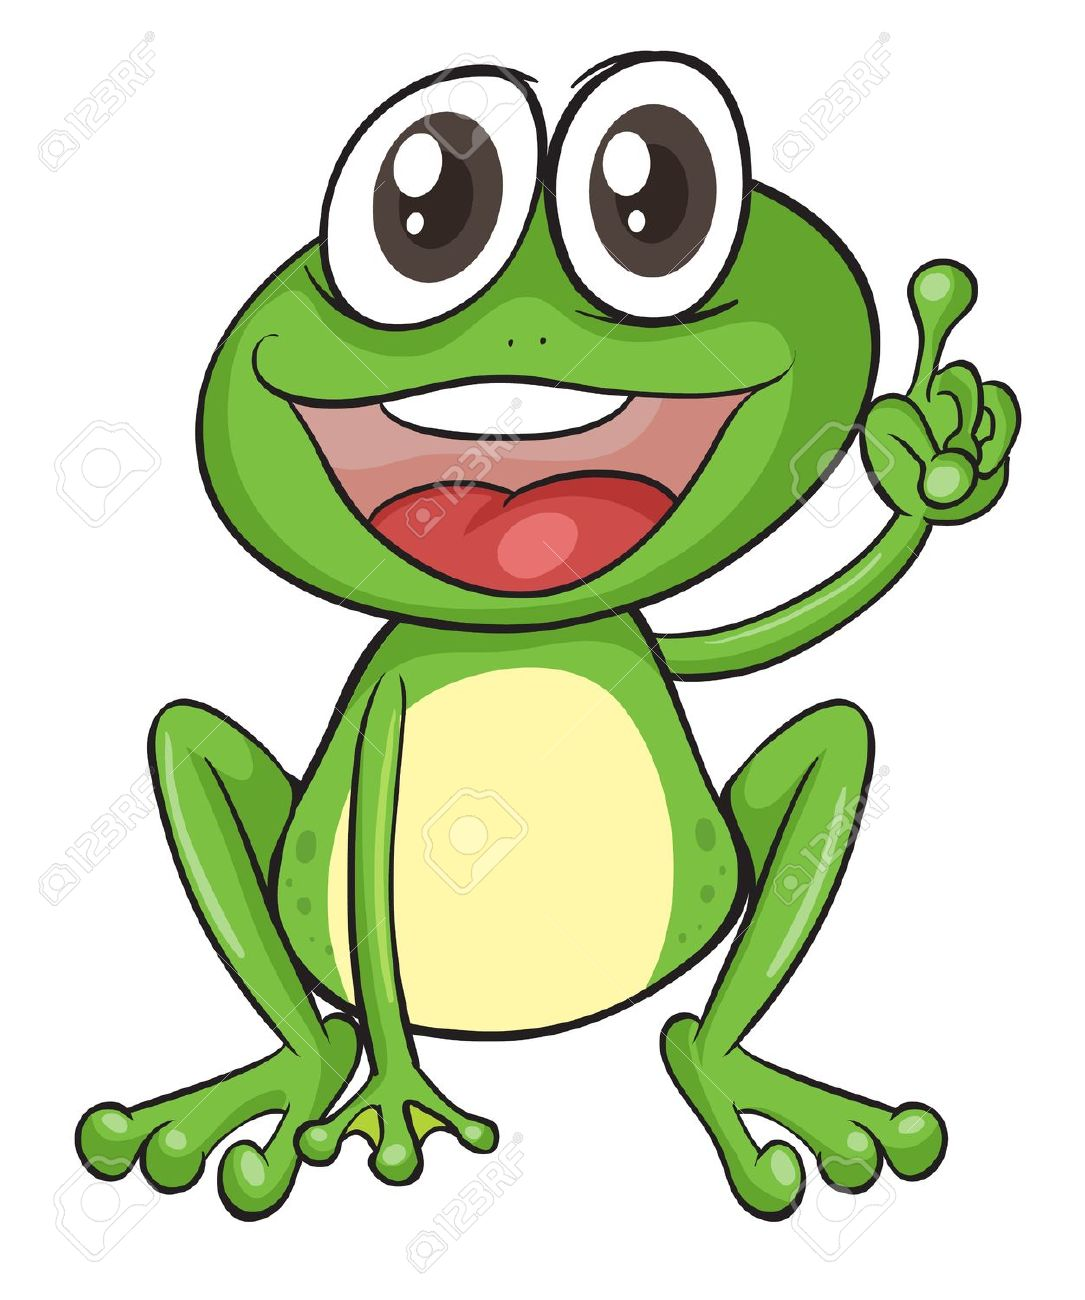 Free frog clip art drawings .